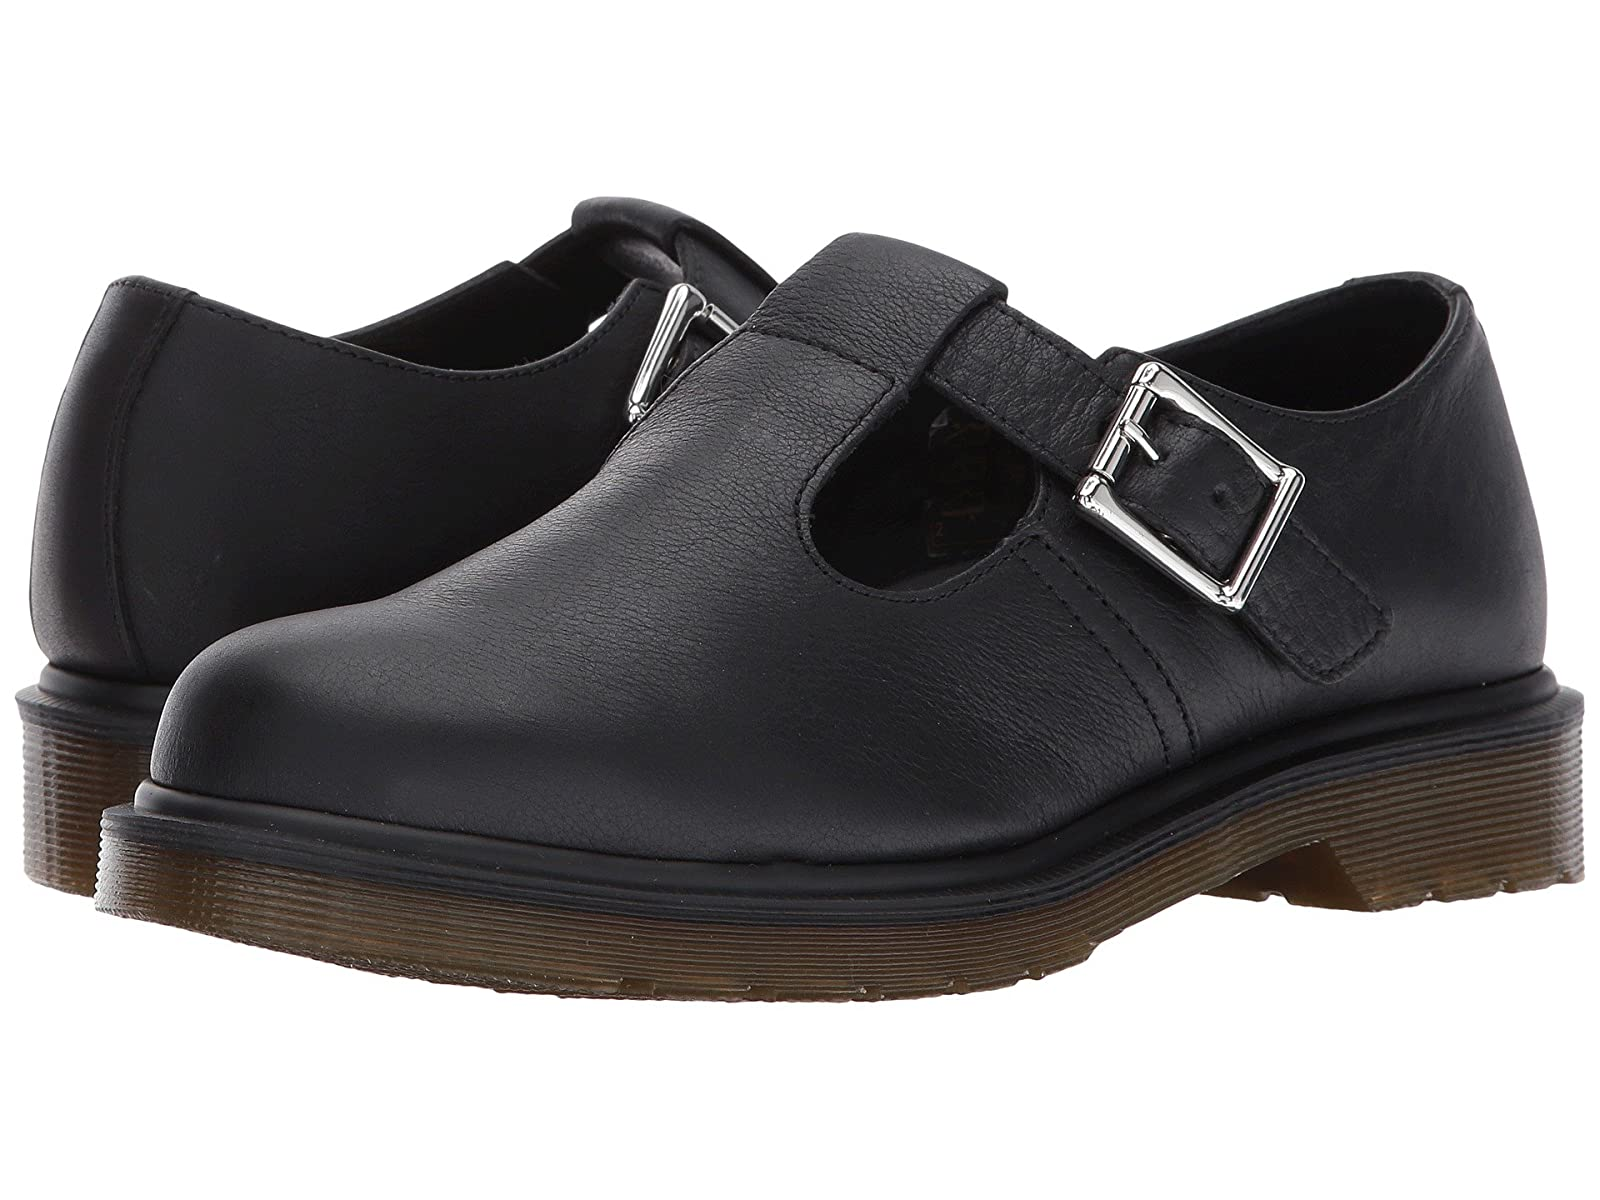 Dr. Martens Polley PW T-Bar Mary JaneAtmospheric grades have affordable shoes